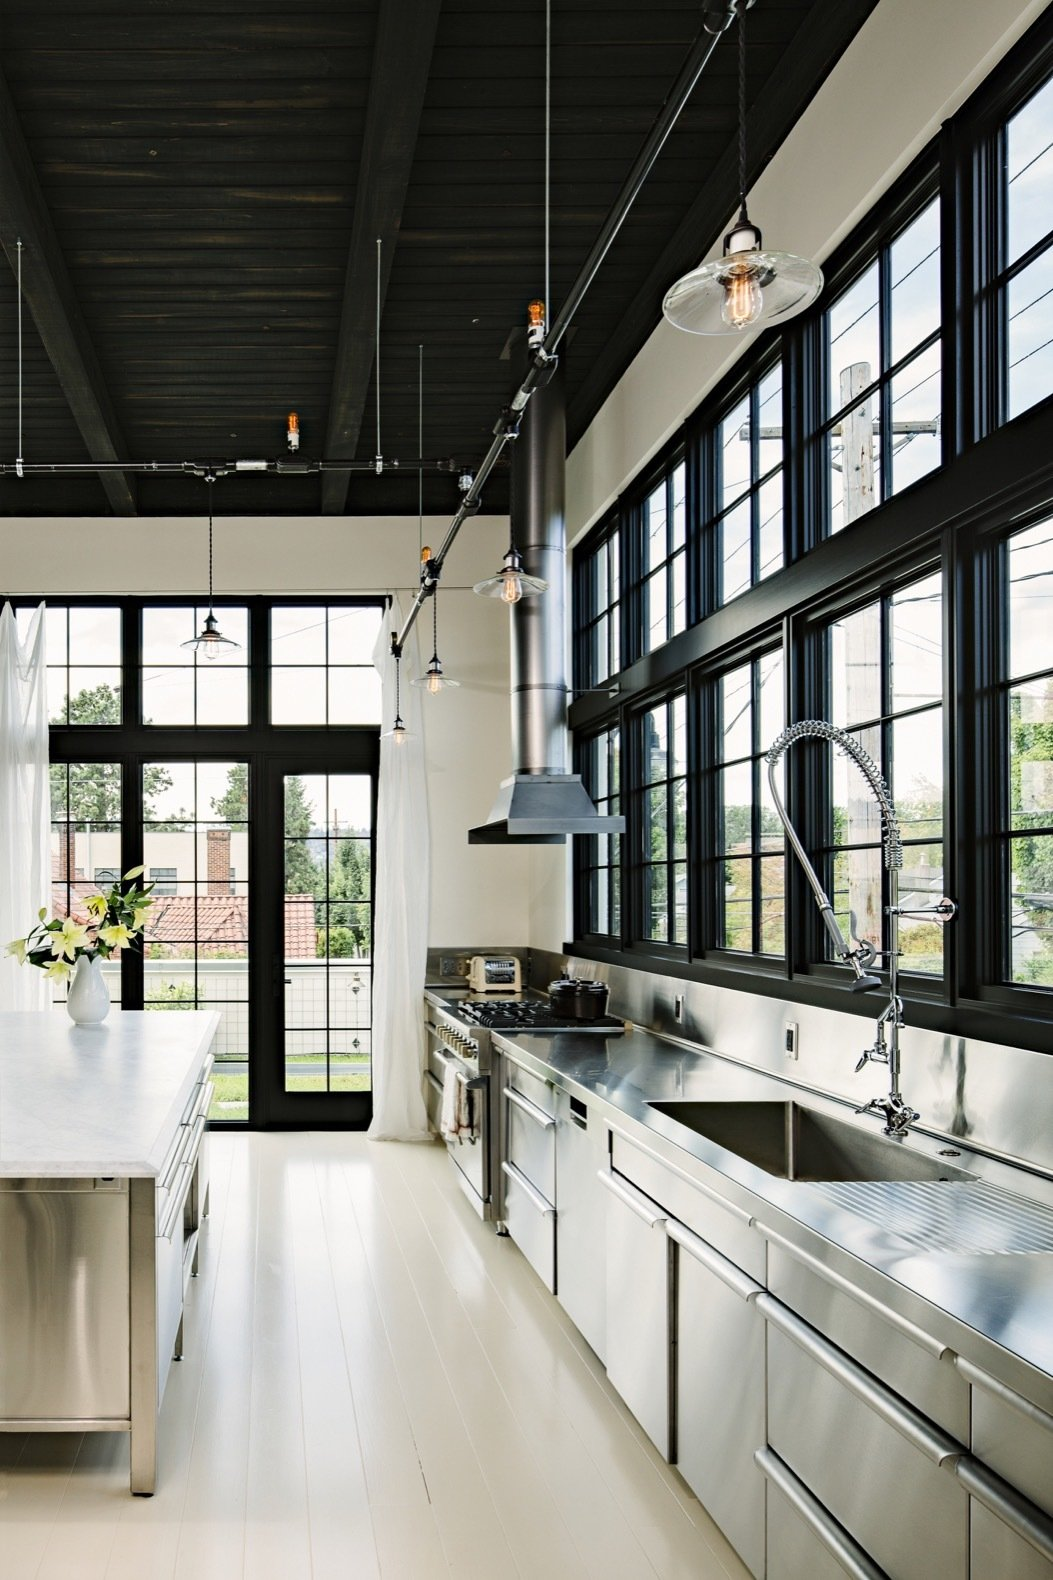 "Kitchen, Painted Wood, Wall Oven, Metal, Pendant, Metal, Cooktops, Range Hood, Refrigerator, Undermount, and Metal To bring their adaptive-reuse abode to life, a pair of former New Yorkers tapped local studio Emerick Architects, which had completed similar renovations, such as the nearby rehabbed Ford Model-T Factory. ""Marrying practicality with craftsmanship, almost everything for the project was handmade locally by Portland artisans including cabinetry, steel work, railings, doors, stairs, light fixtures, and plaster,"" adds the firm. Stainless steel has been used for the kitchen counters, cabinets, and backsplash.  Kitchen Metal Range Hood Photos from A 1920s Portland Warehouse Is Rehabbed Into an Industrial-Chic Home"